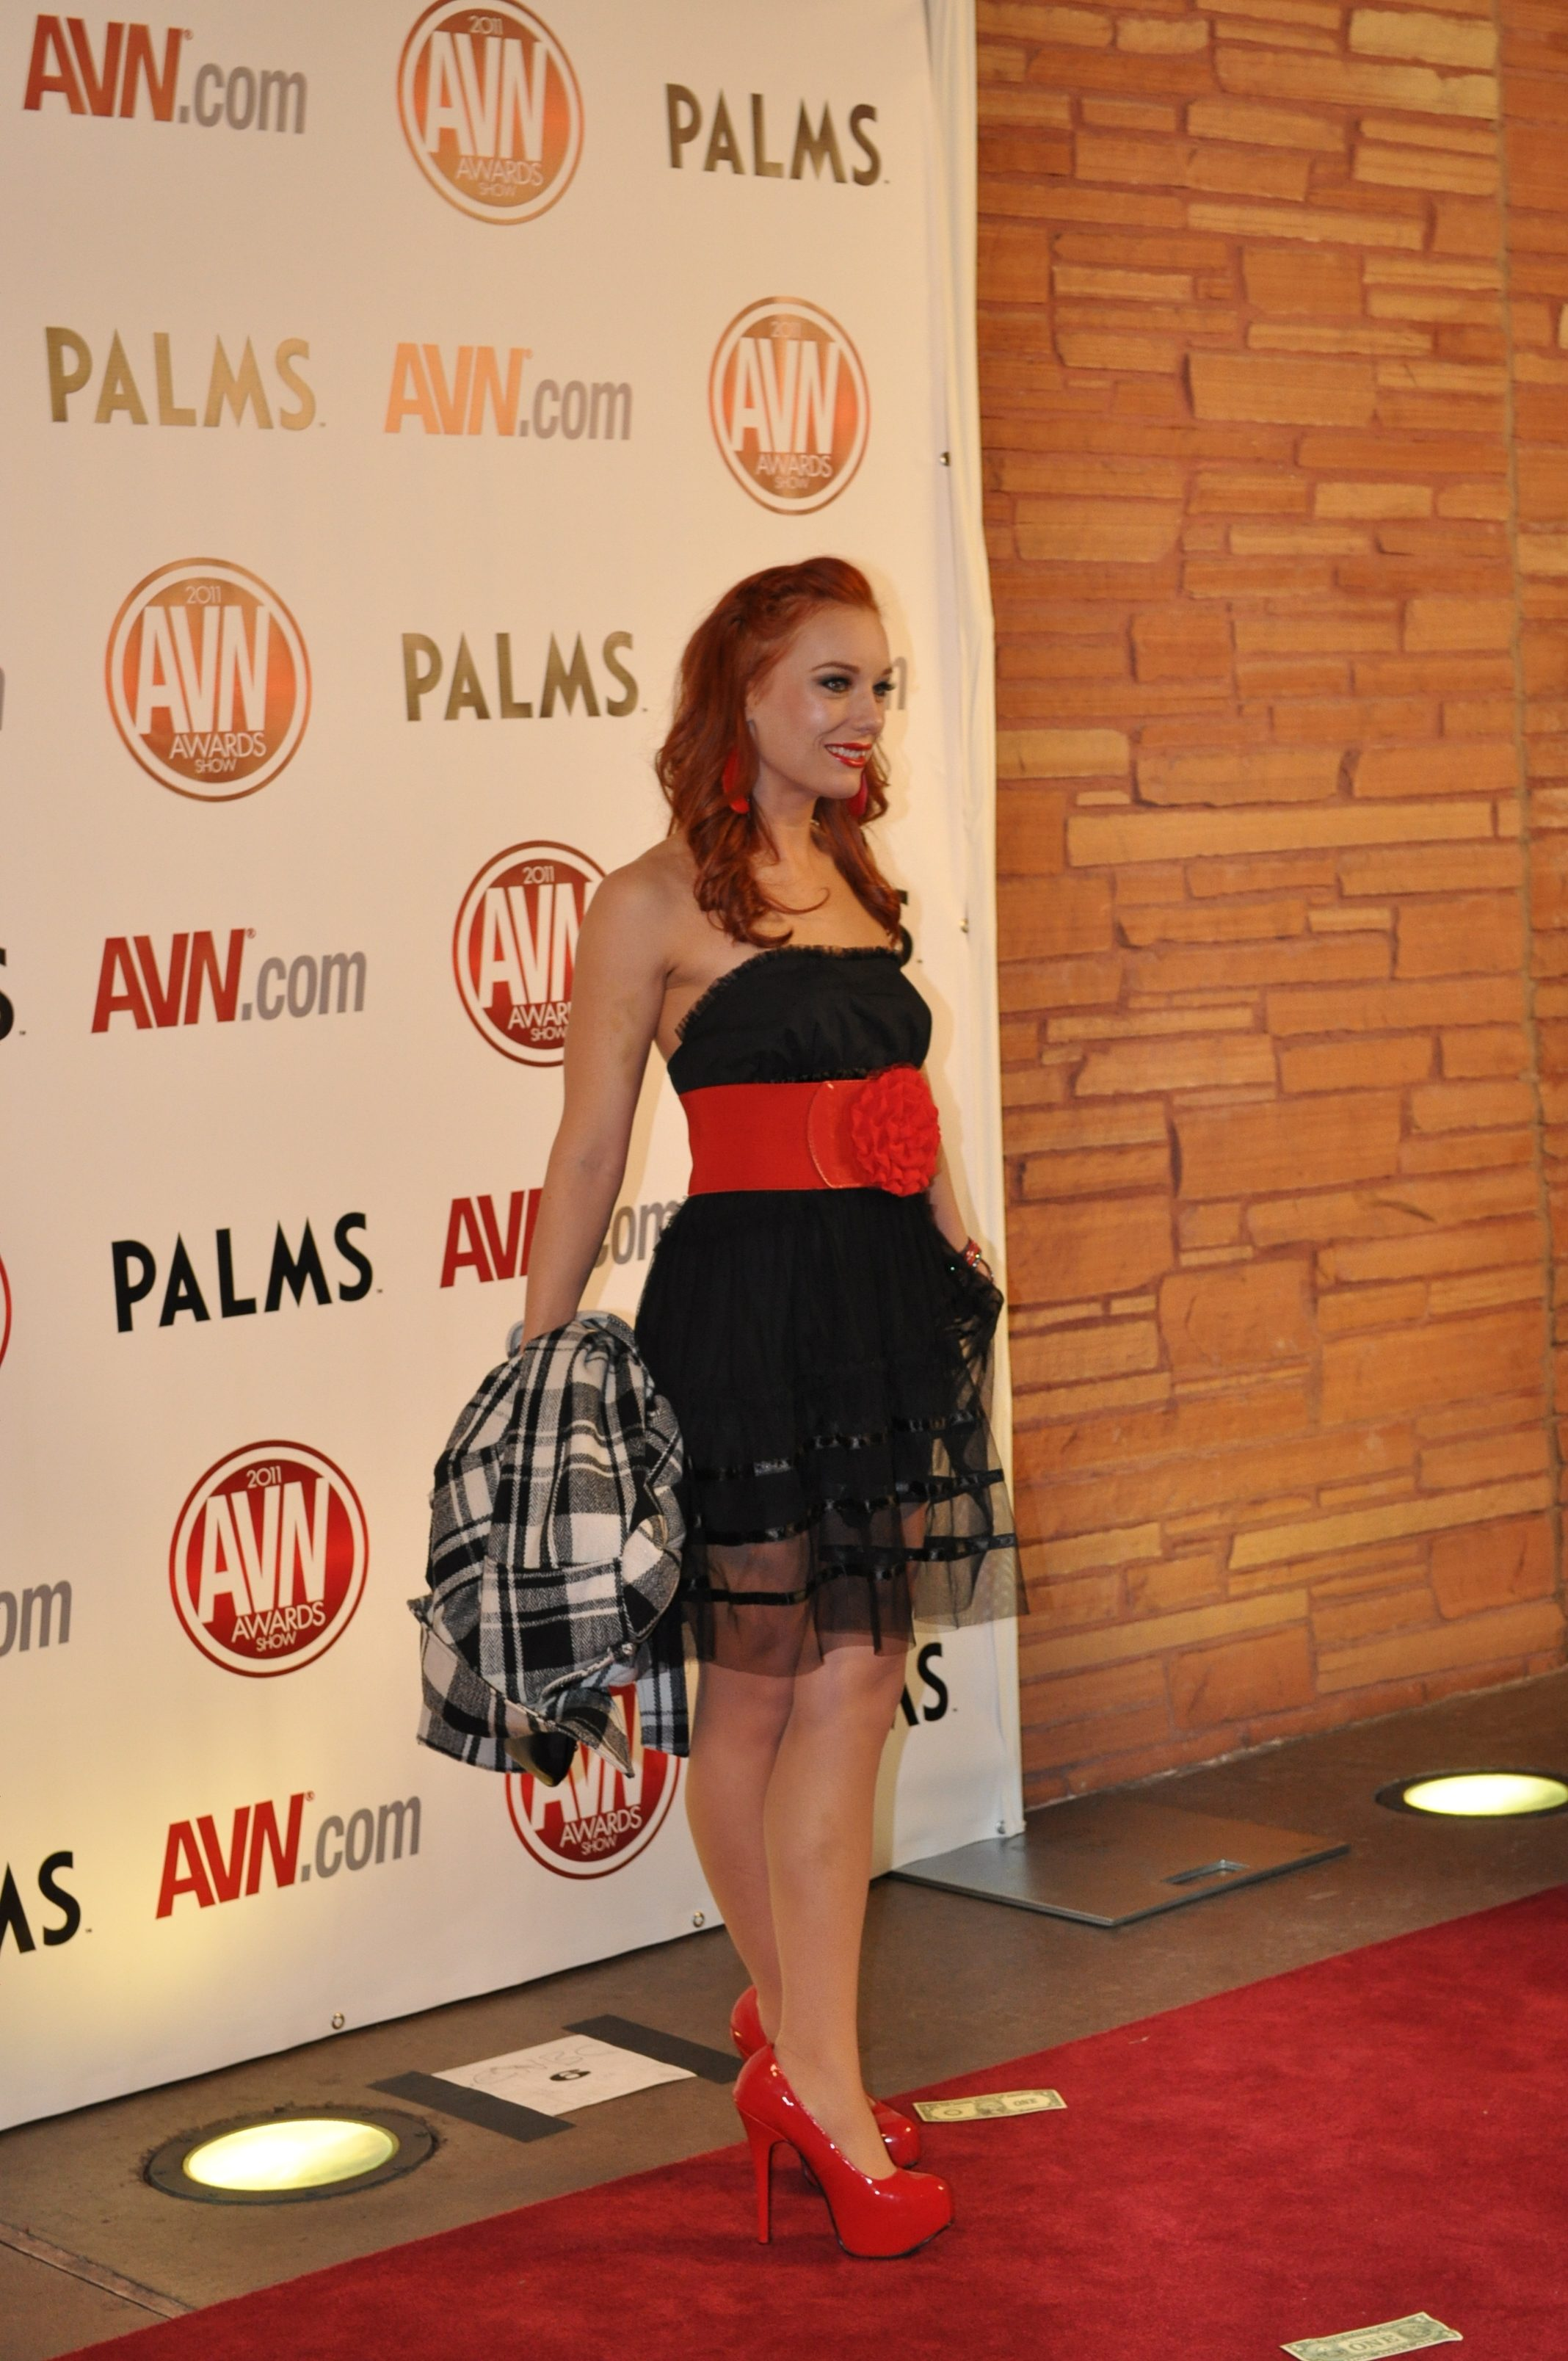 Dani Jensen at the 2011 AVN Awards